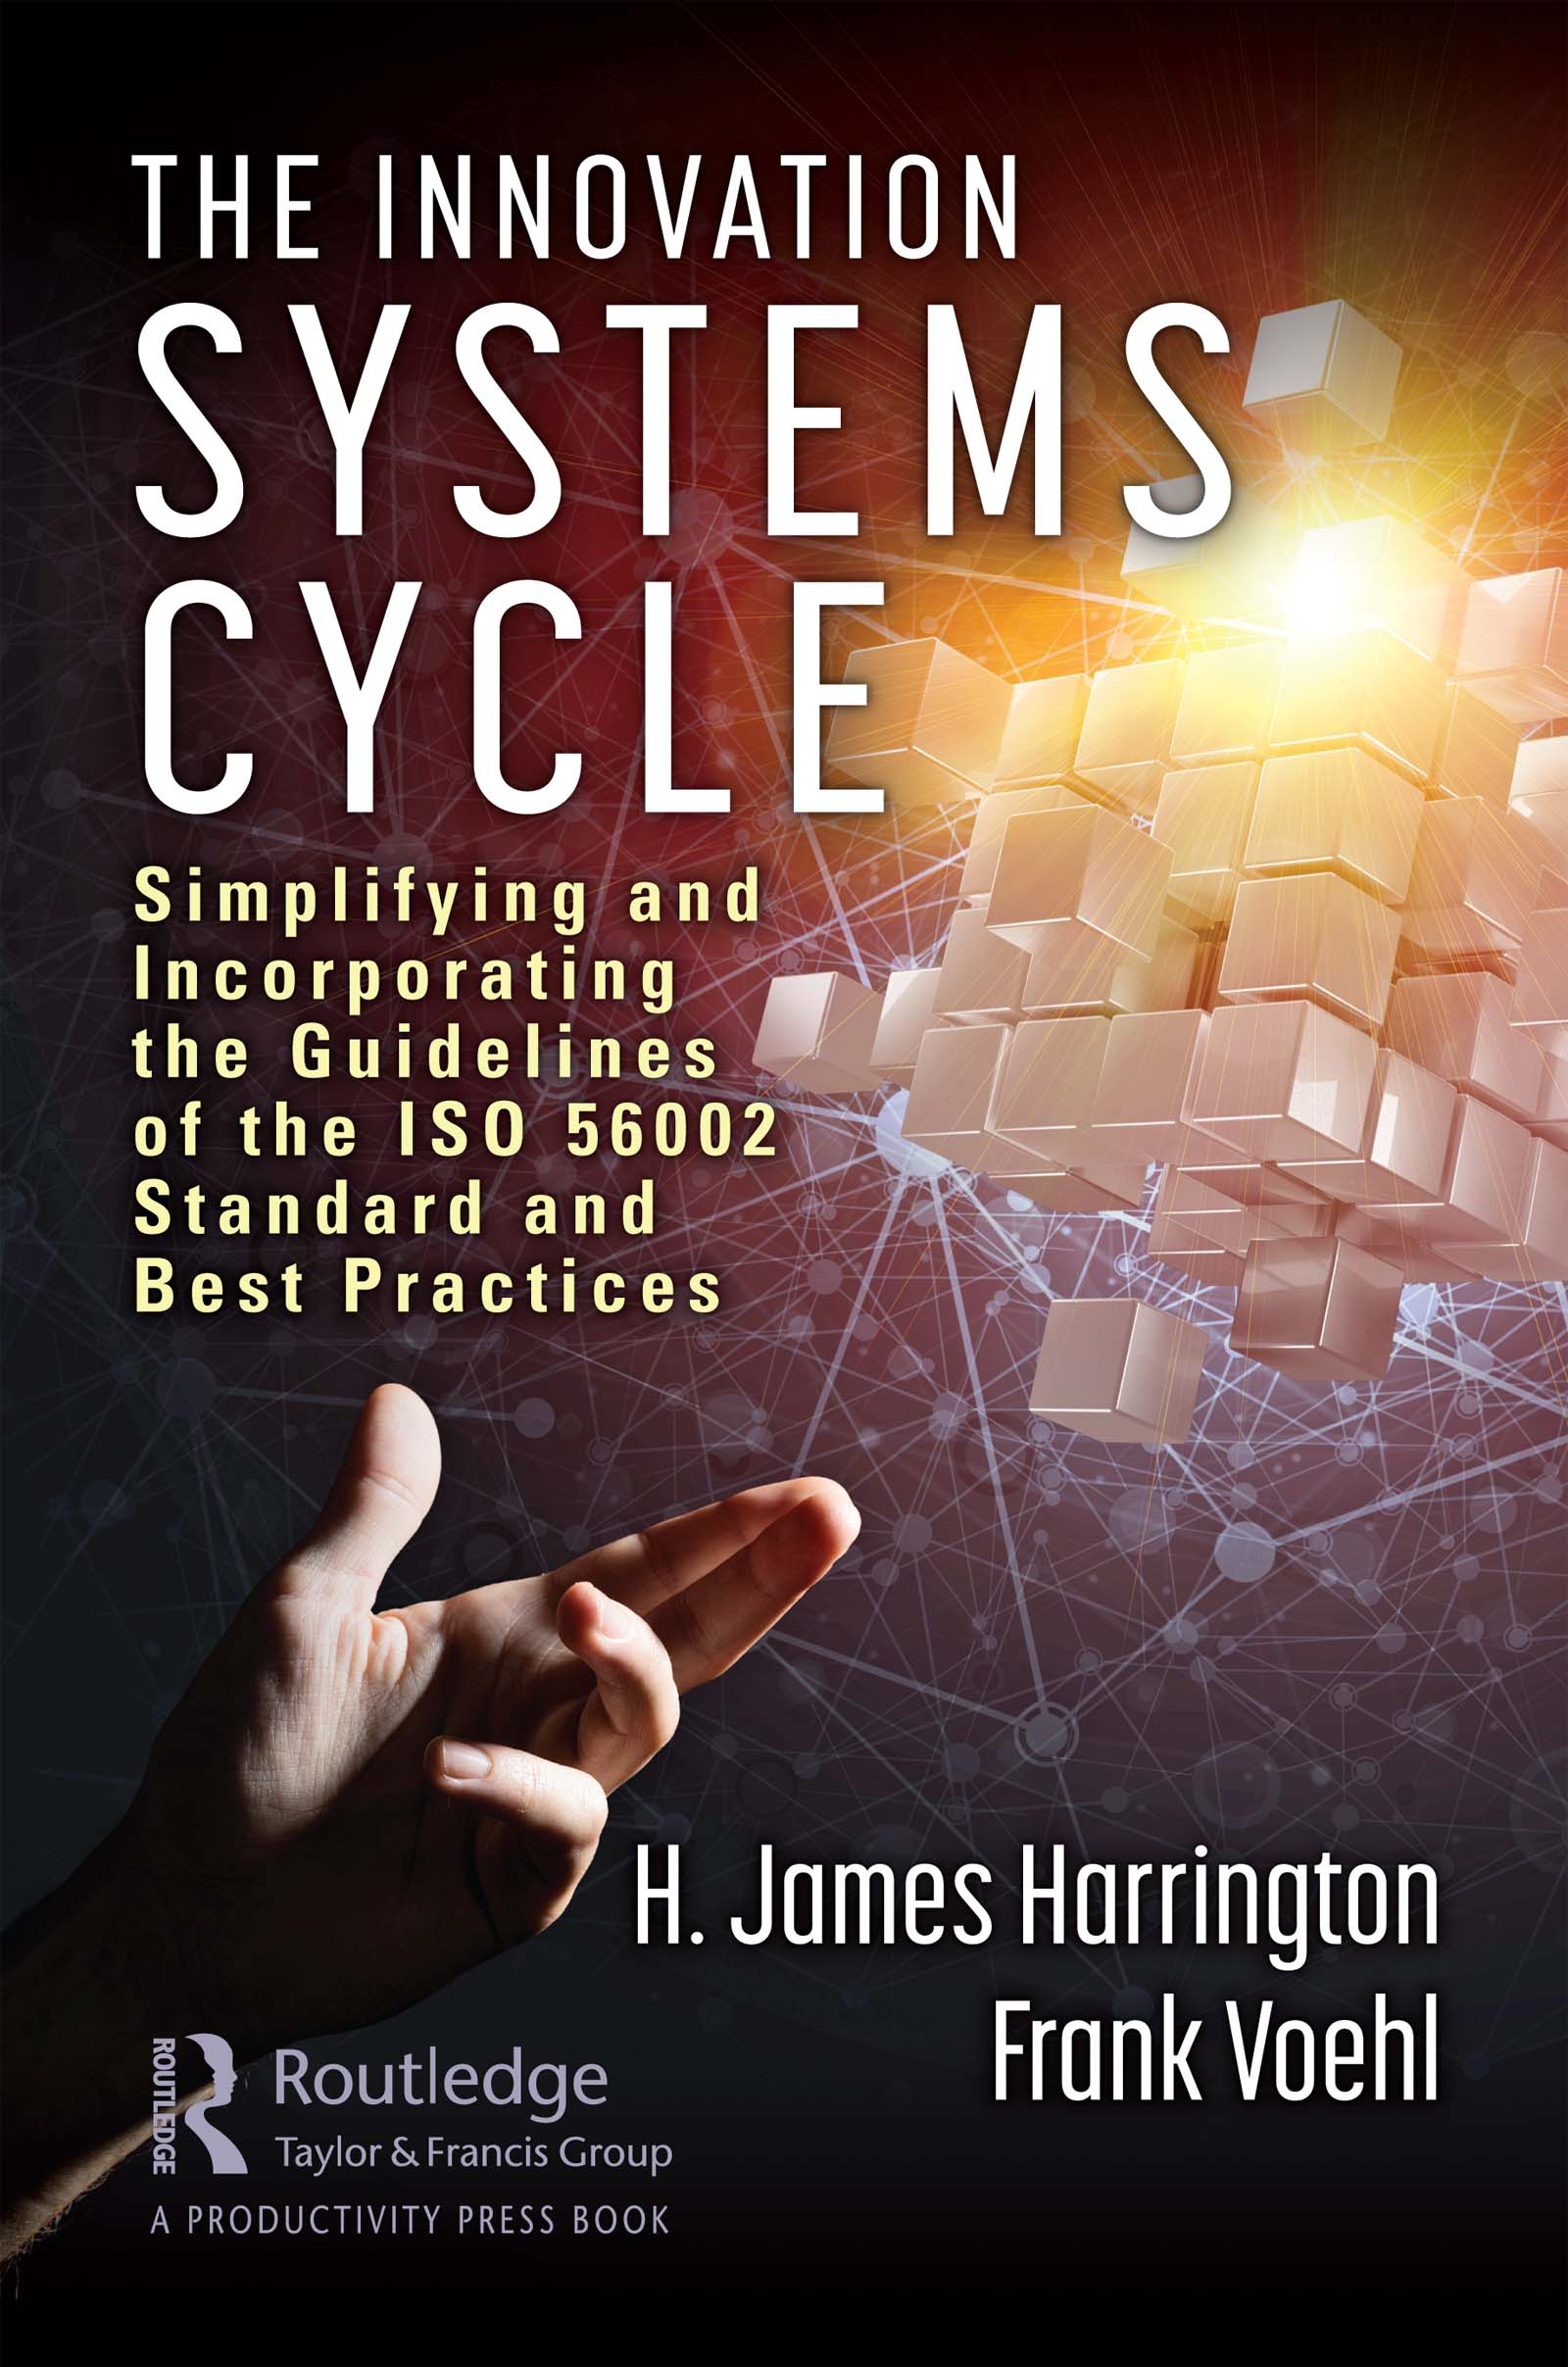 The Innovation Systems Cycle: Simplifying and Incorporating the Guidelines of the ISO 56002 Standard and Best Practices book cover